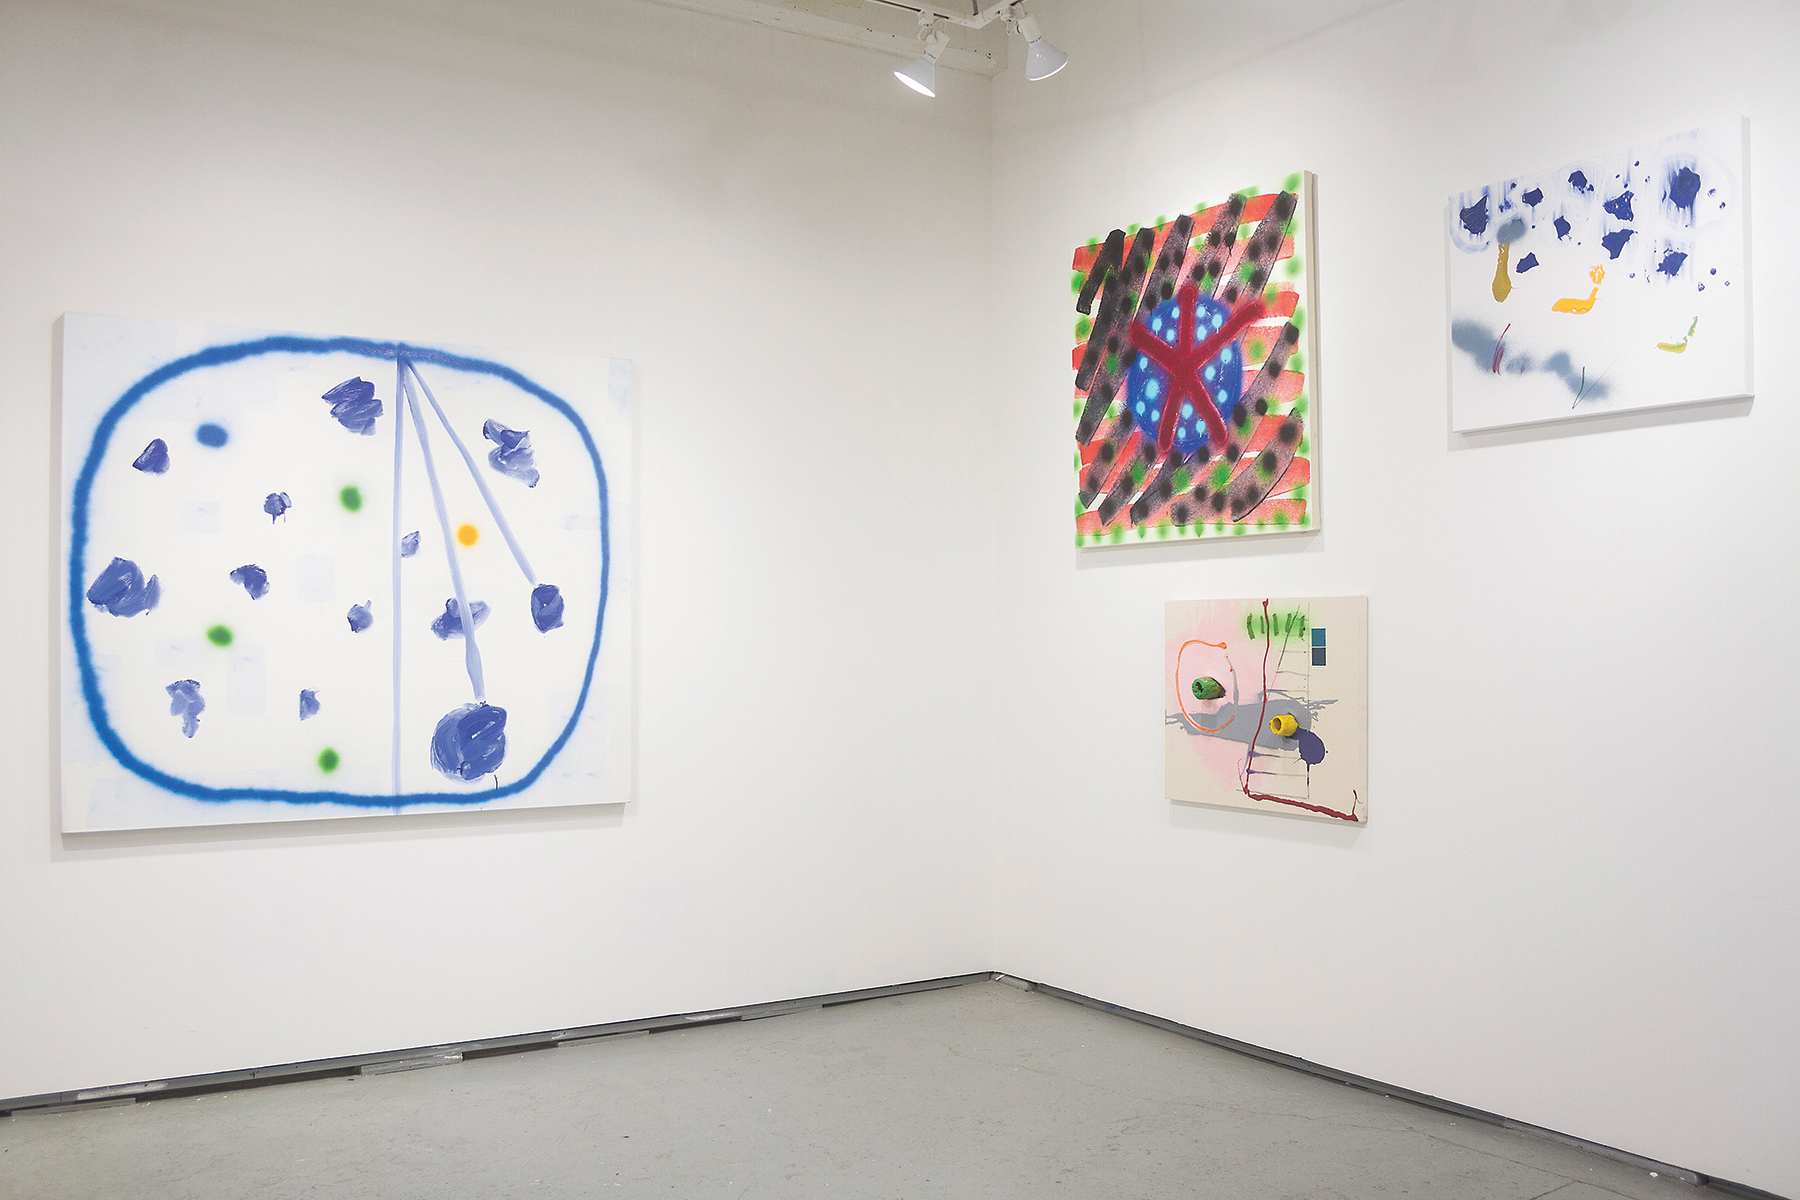 Installation view:  (I) Pine , Solo show by Rick Briggs,   curated collectively by OyG co-directors, 2017.